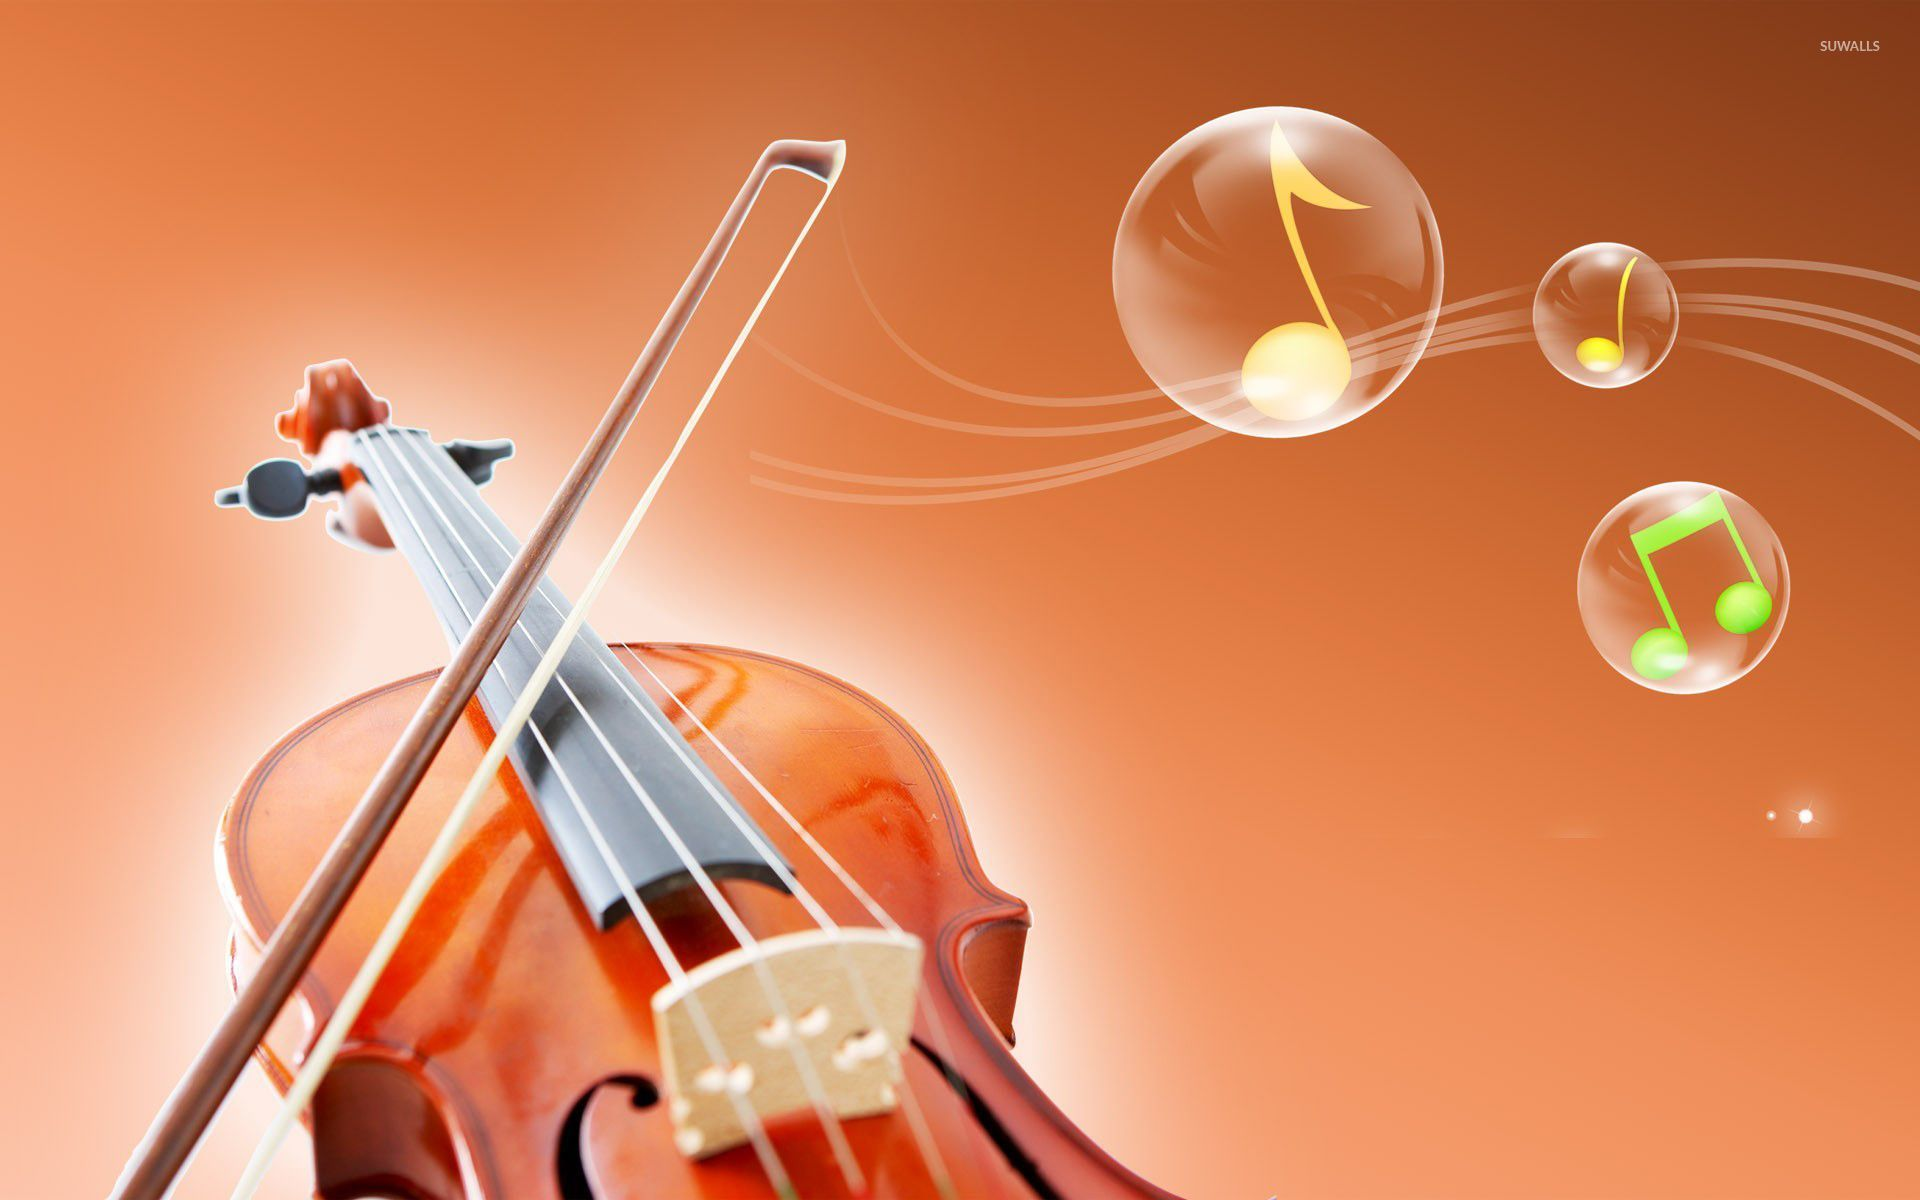 Violin and notes in bubbles wallpaper - Music wallpapers ...